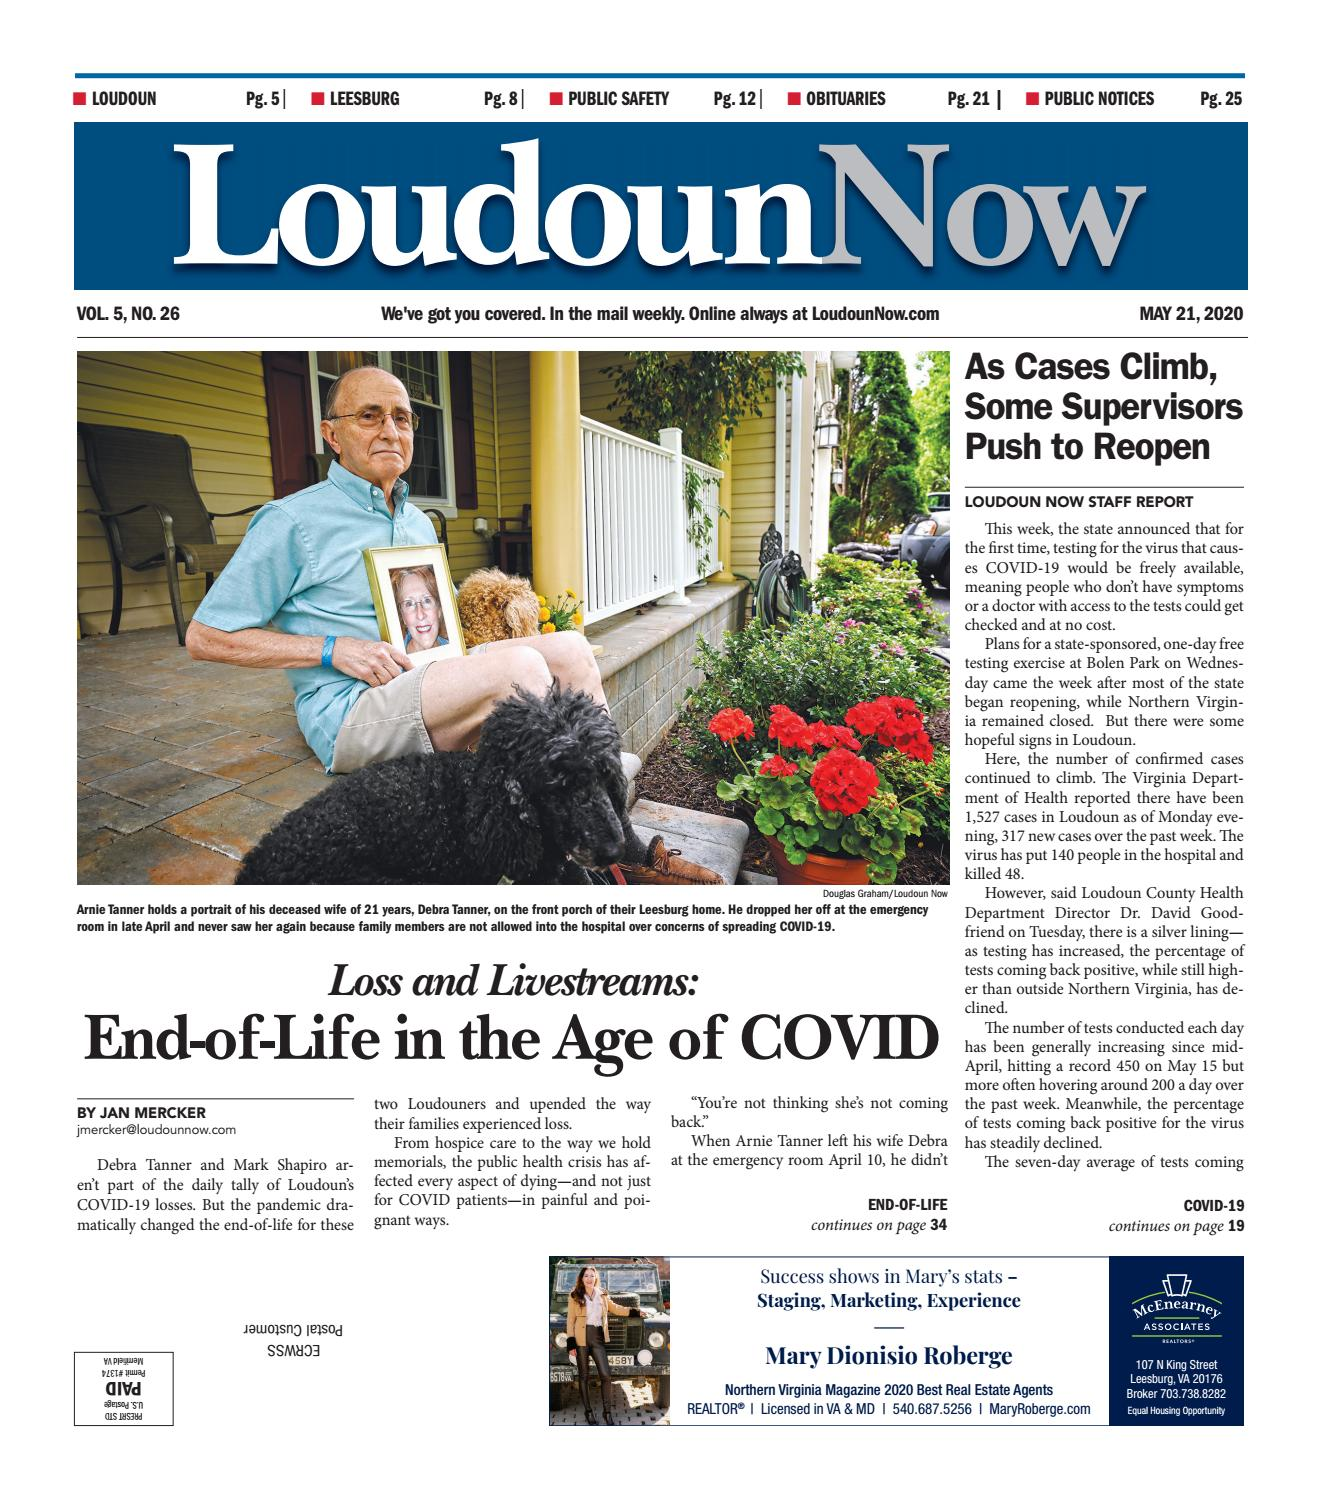 A Christmas Carol 2020 Loudoun Centre Theatre Review Loudoun Now for May 21, 2020 by Loudoun Now   issuu